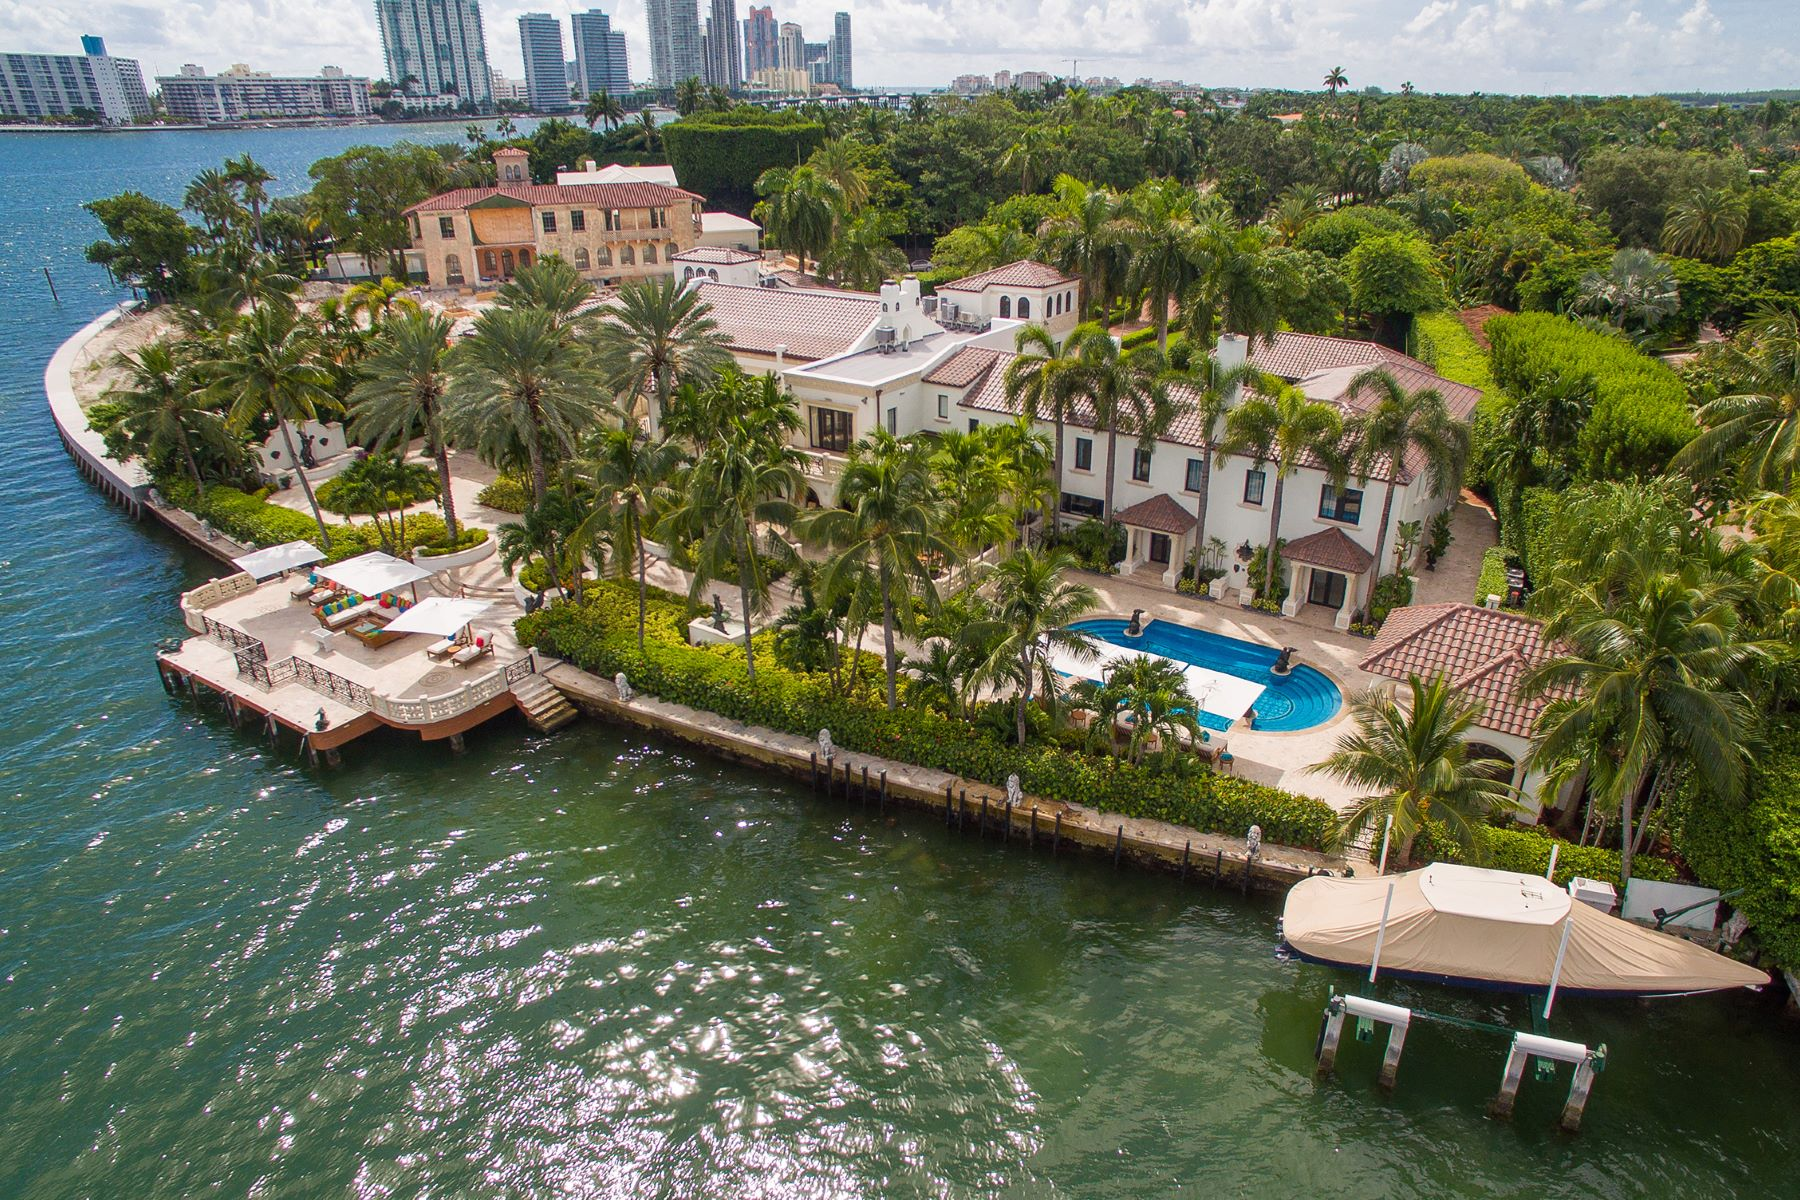 Single Family Home for Sale at 46 Star Island Dr 46 Star Island Drive Miami Beach, Florida 33139 United States